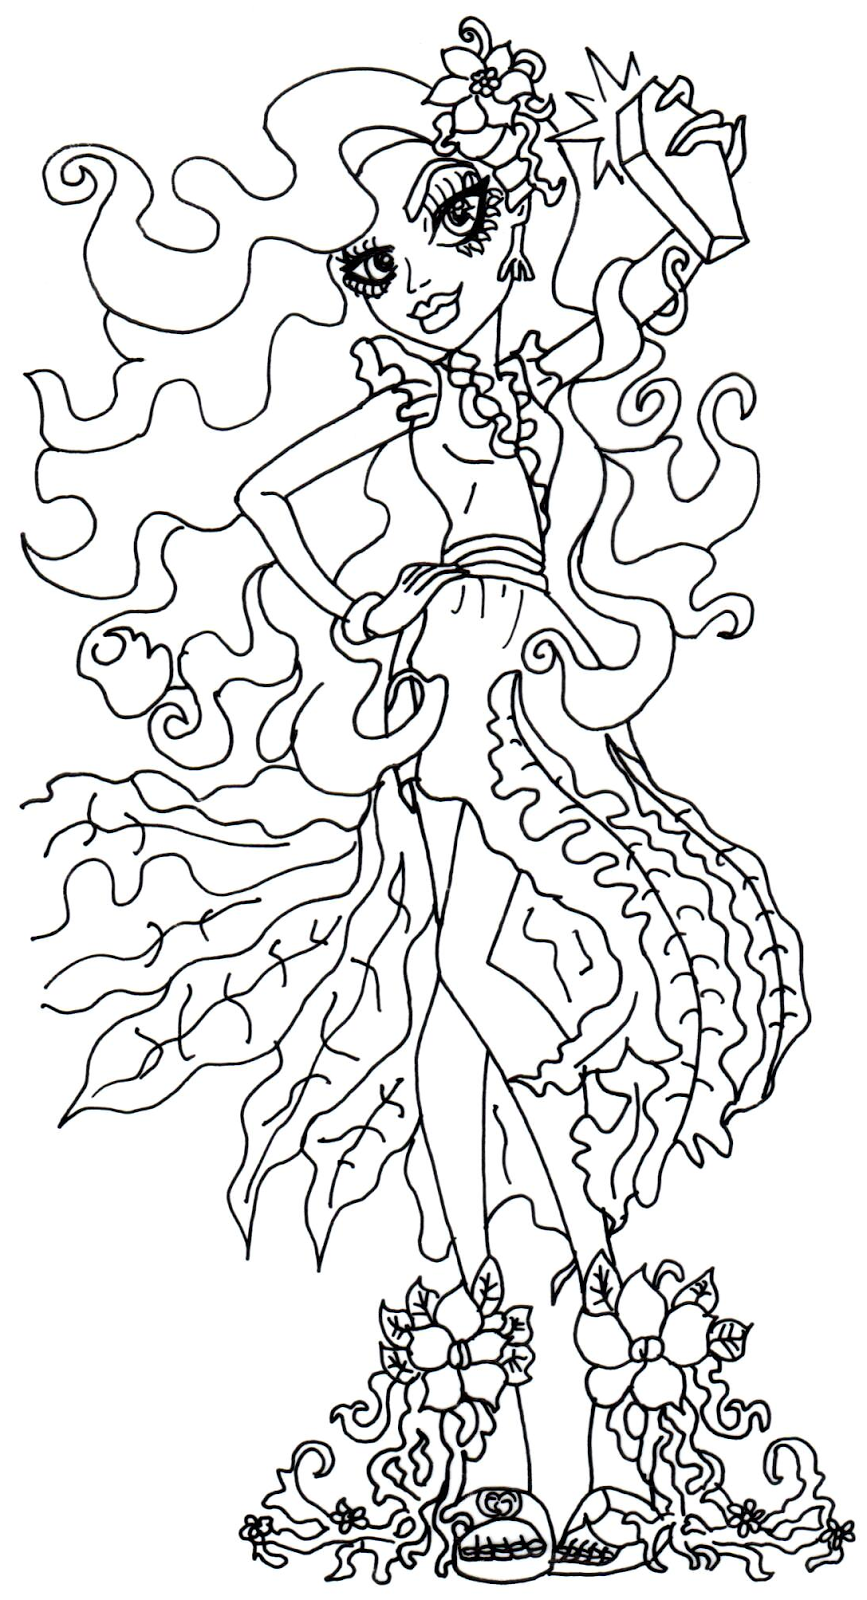 monster high clawdeen wolf. coloring pages. monster high monster ...